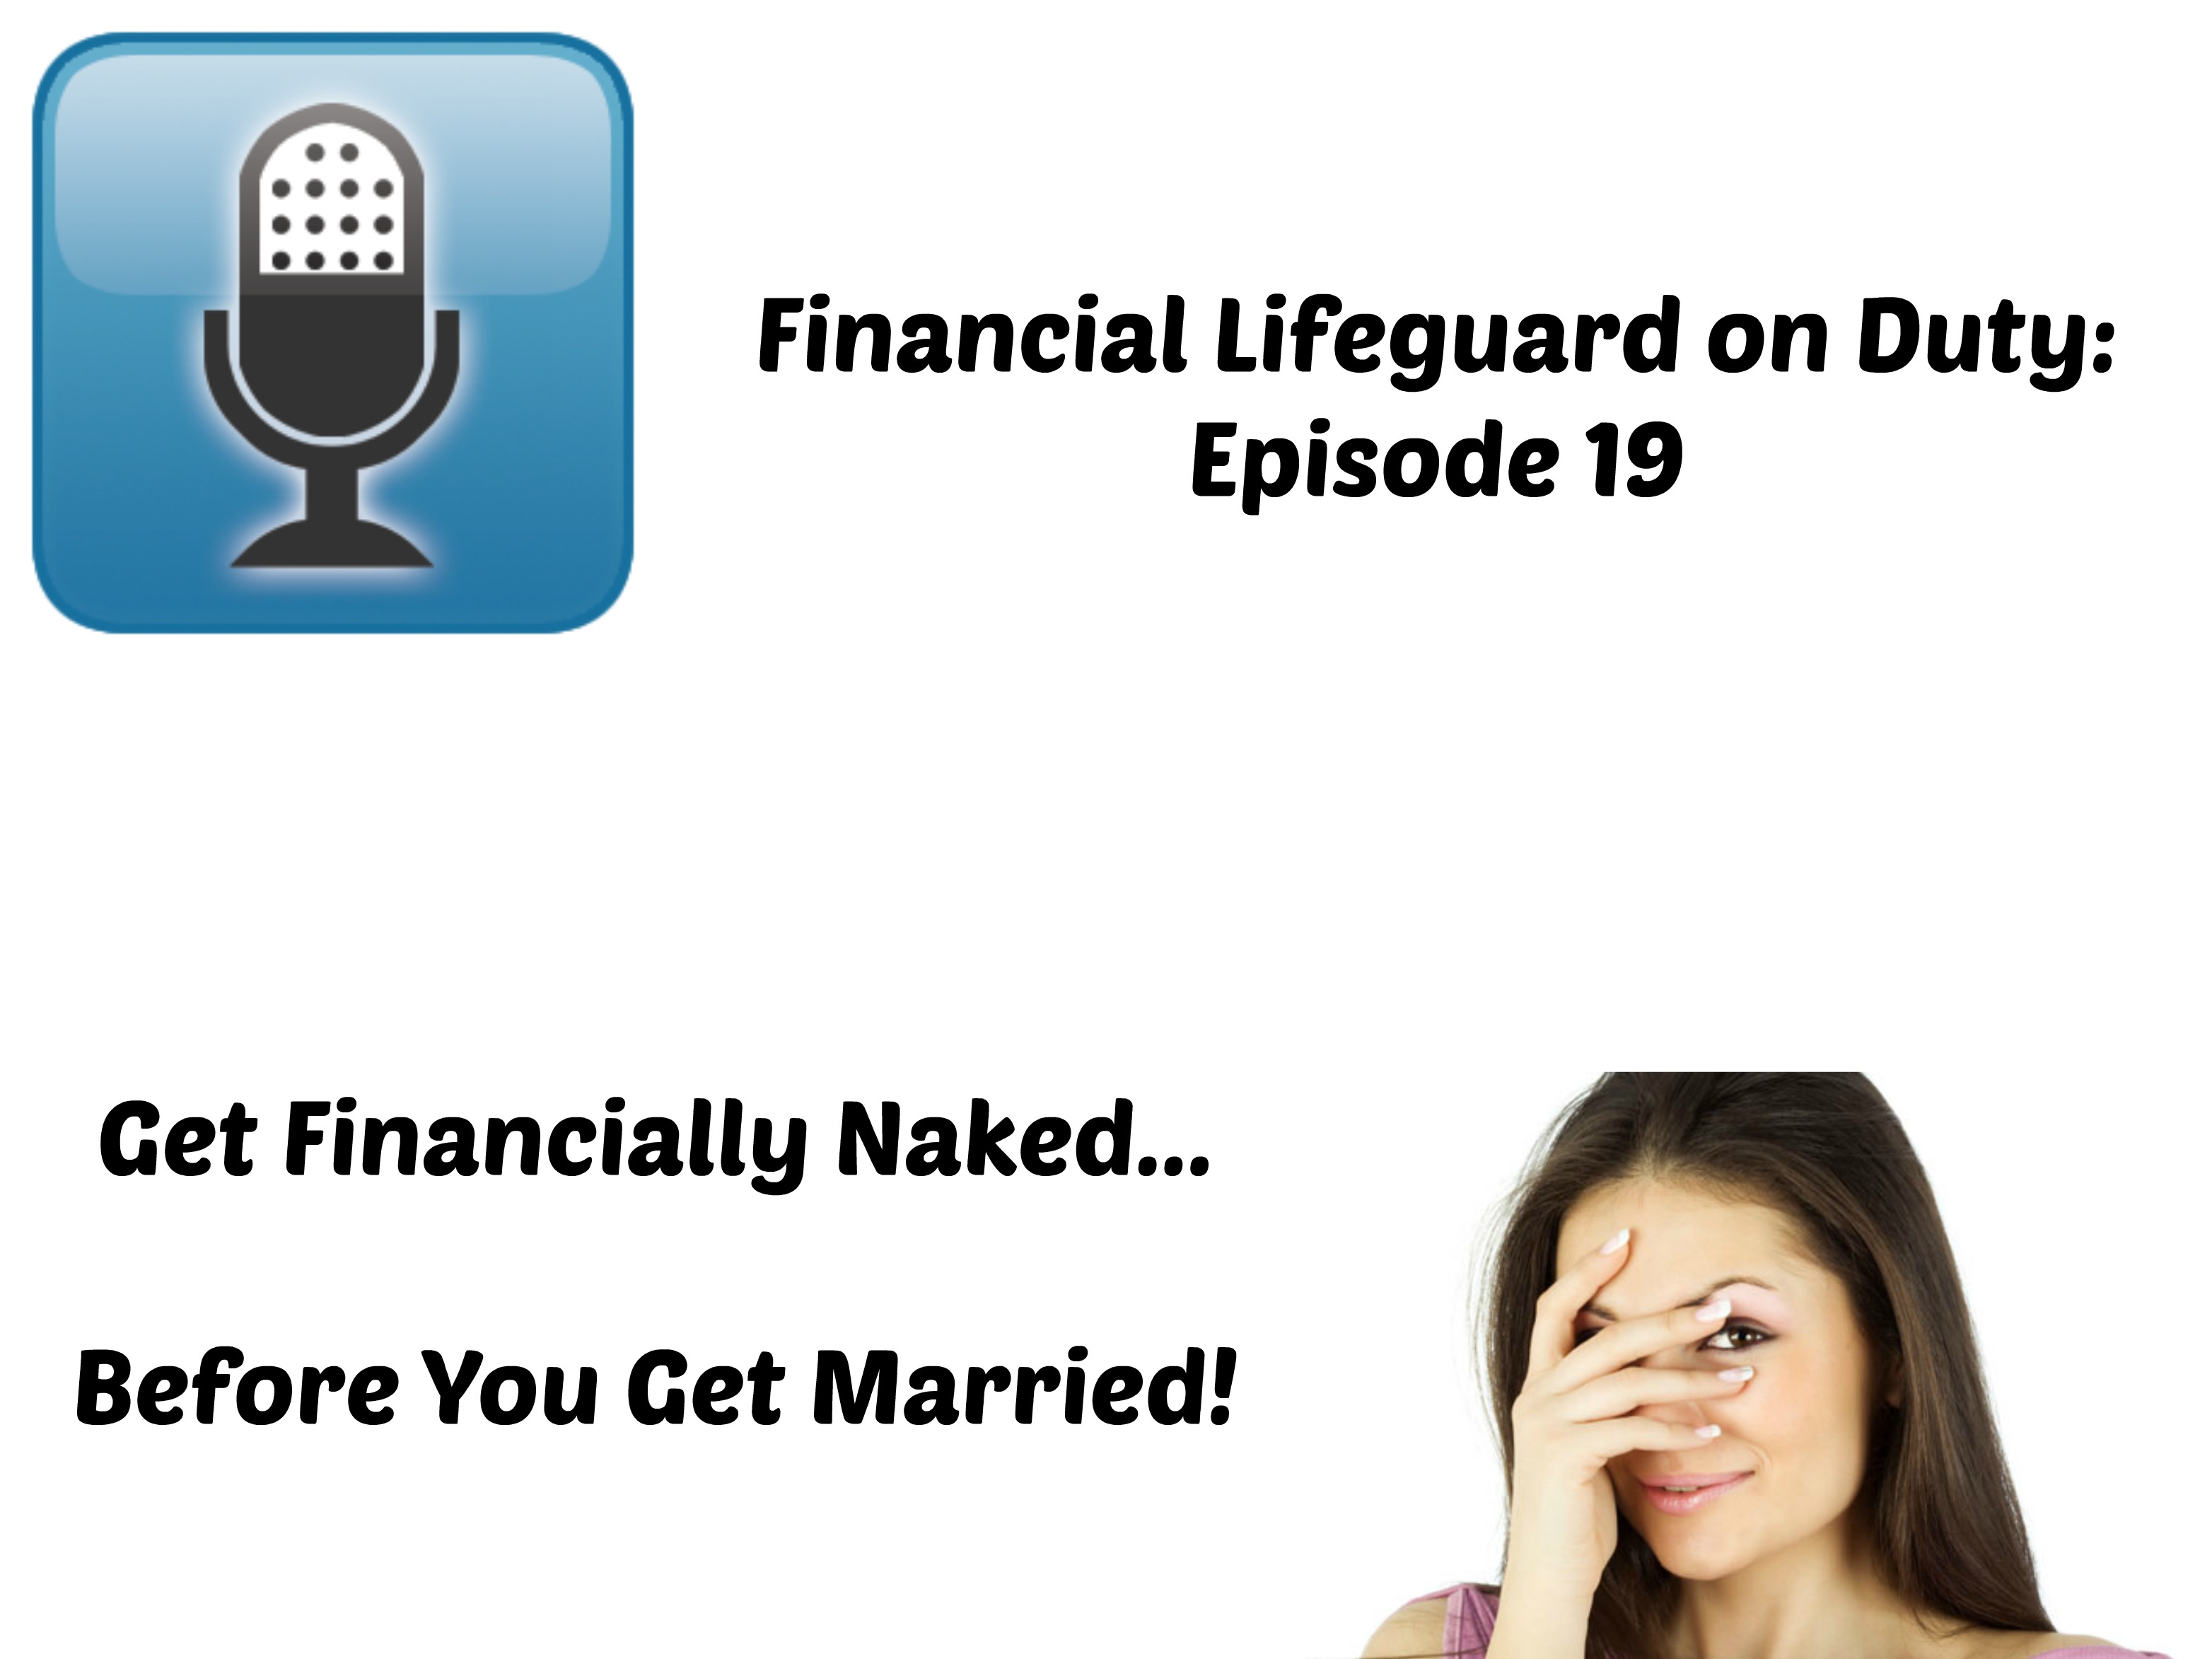 financially naked, financial lifeguard